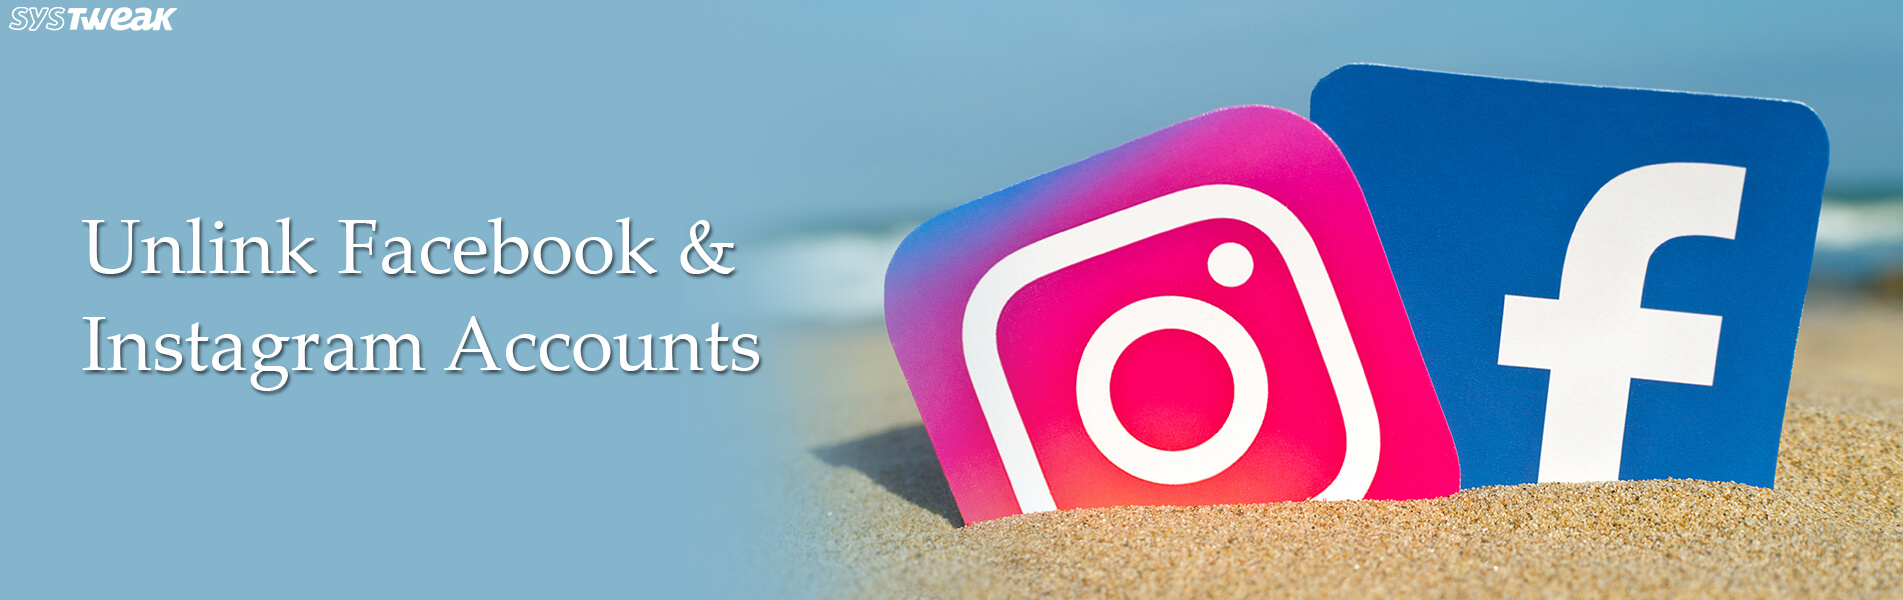 How to Unlink Facebook & Instagram Accounts